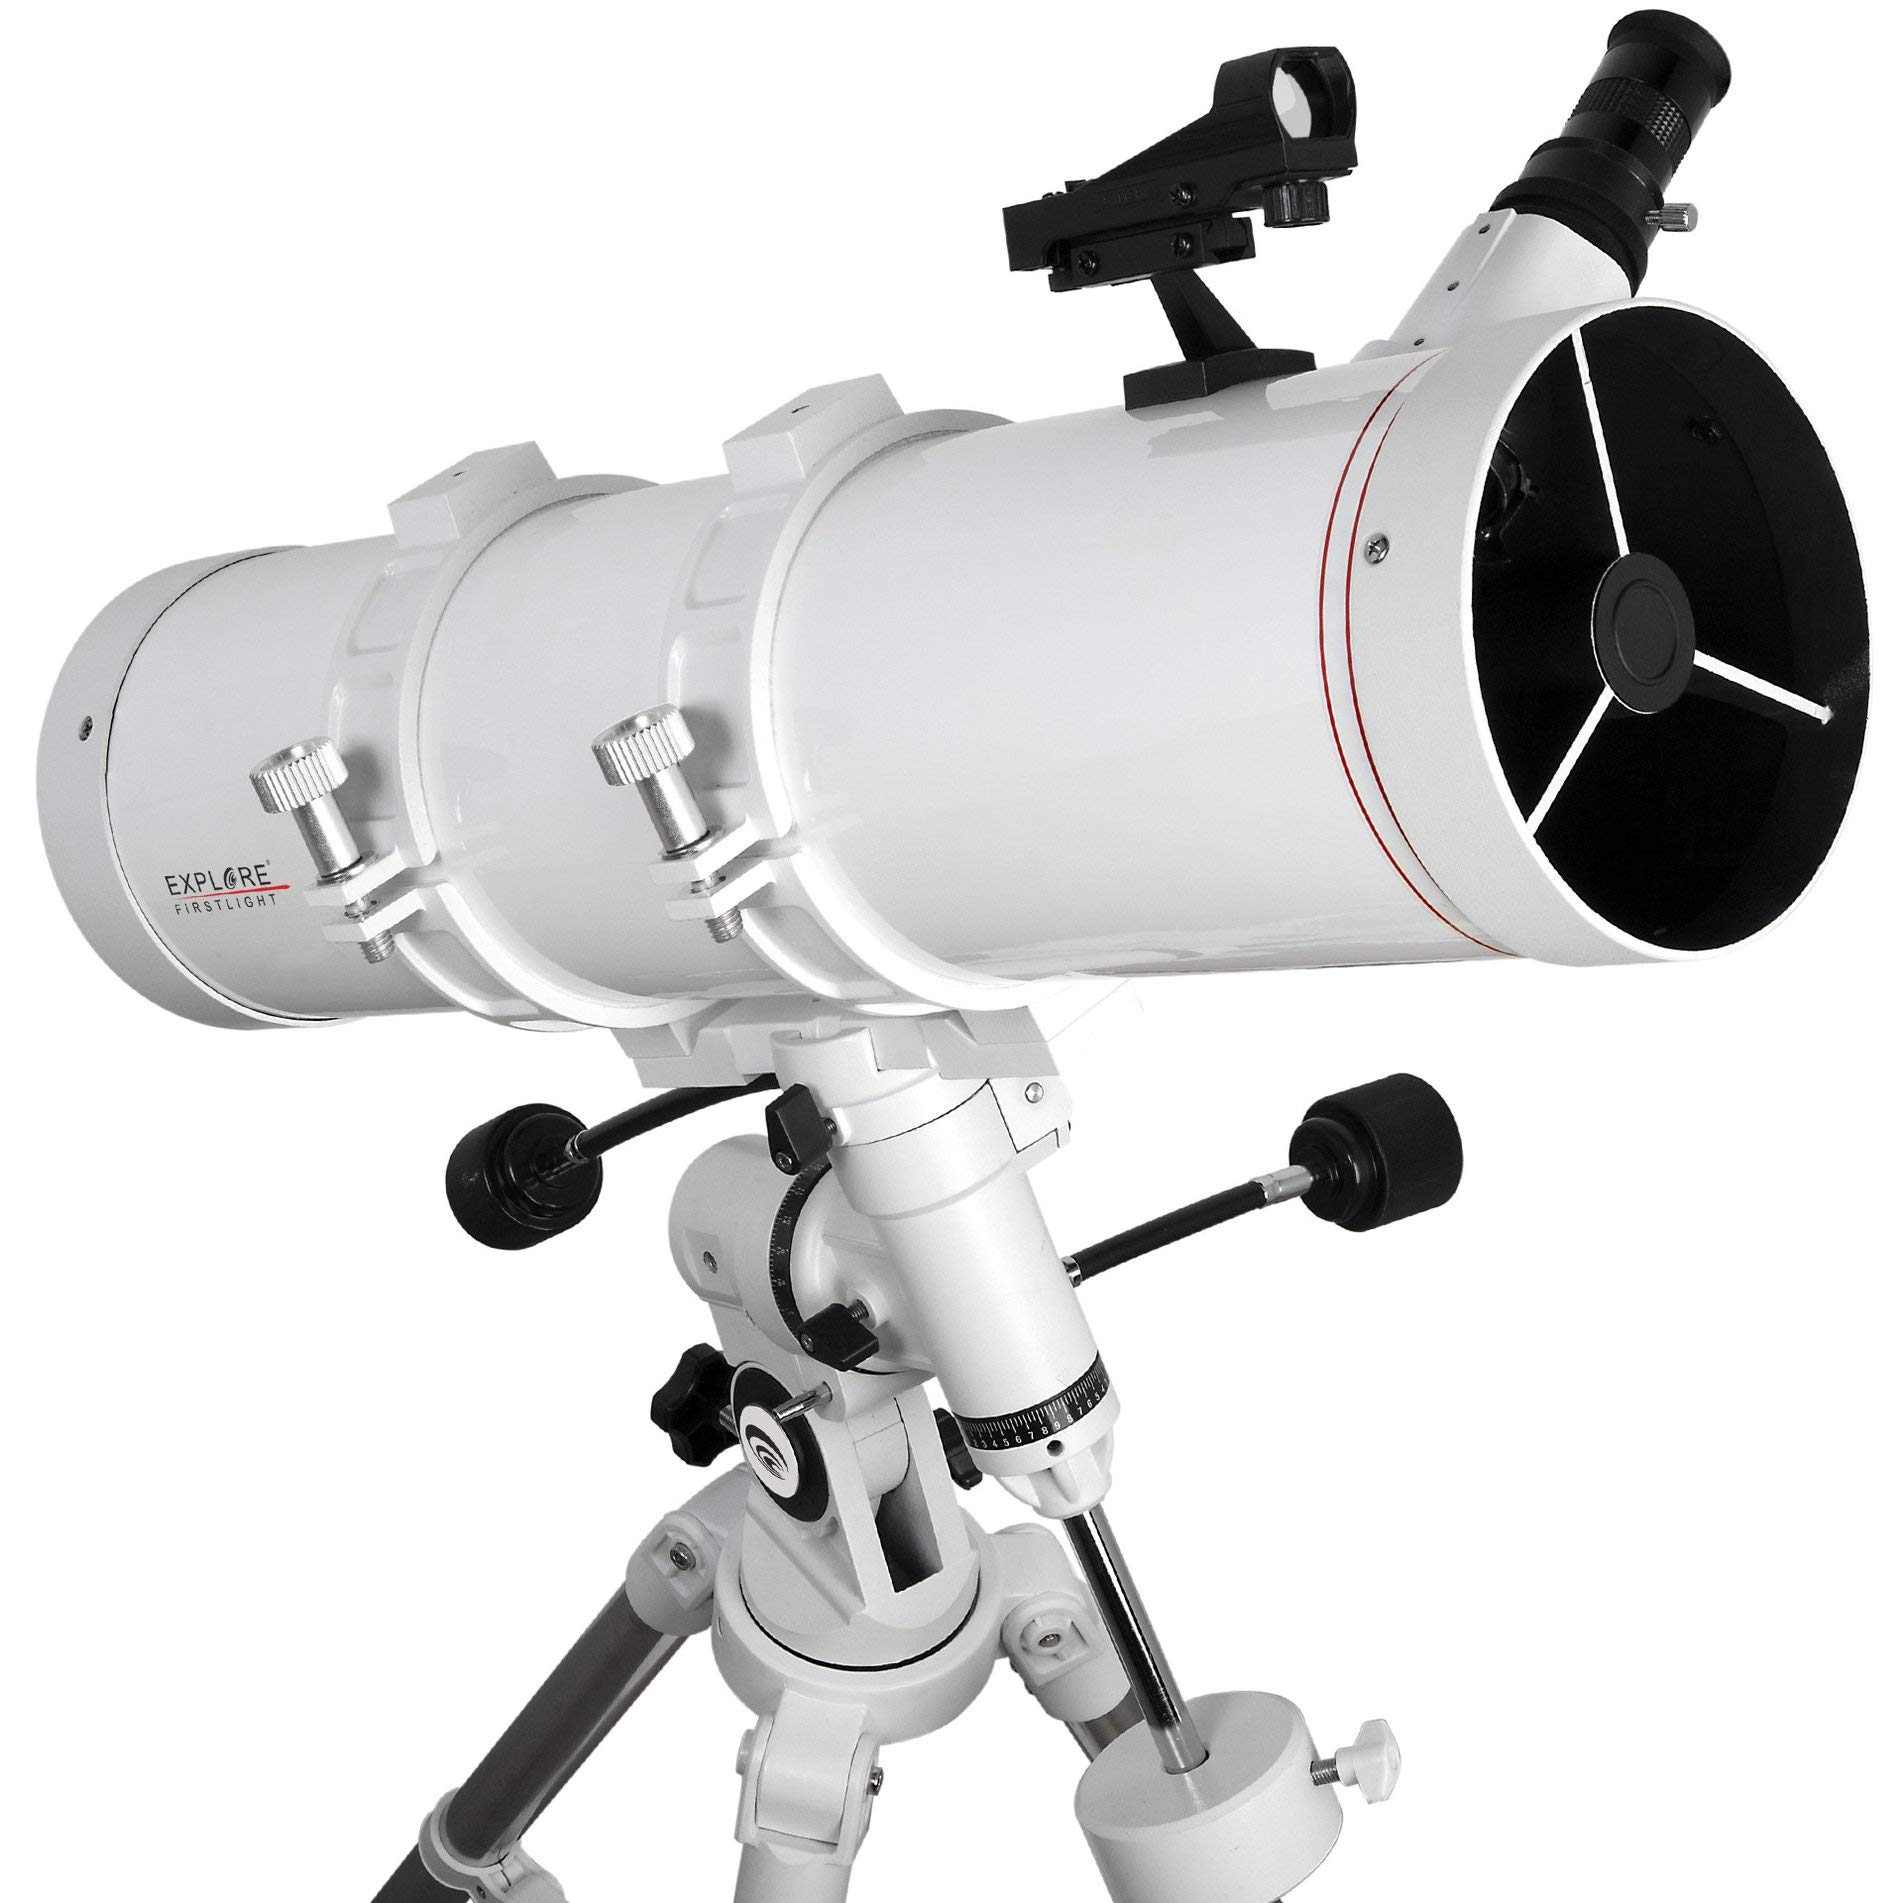 EXPLORE FIRSTLIGHT Telescope- 130mm White Tube Newtonian with 600mm Focal Length f/4.6 Telescope with EXOS Nano EQ3 German Equatorial Mount - FL-N130600EQ3